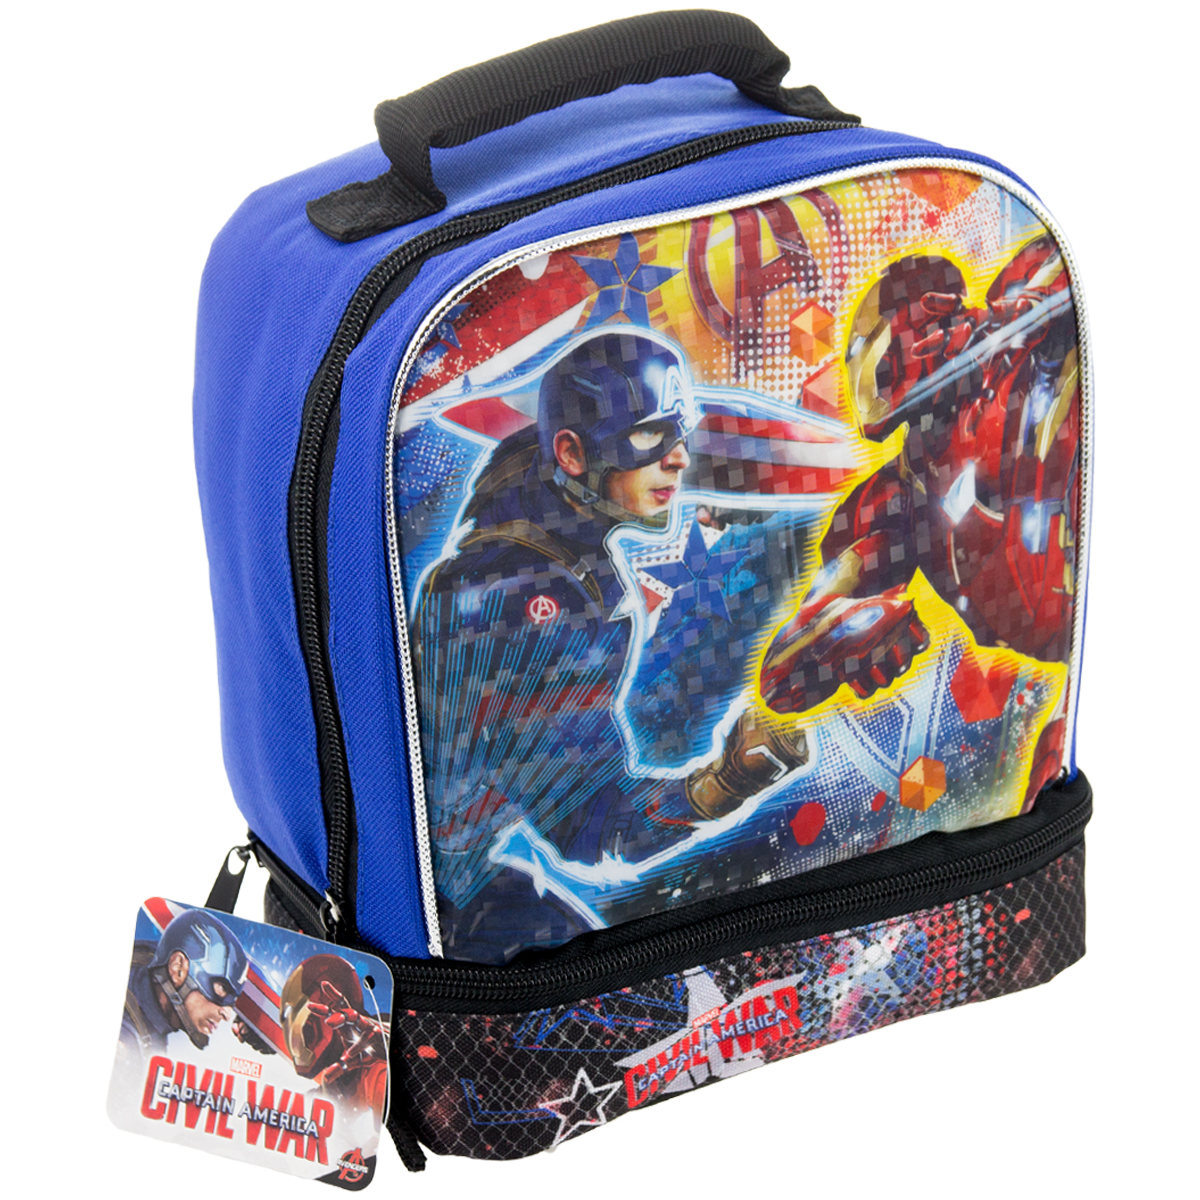 Superhero Disney Matchbox Kids Insulated 2-Section Padded Lunch Bags Lunchbox